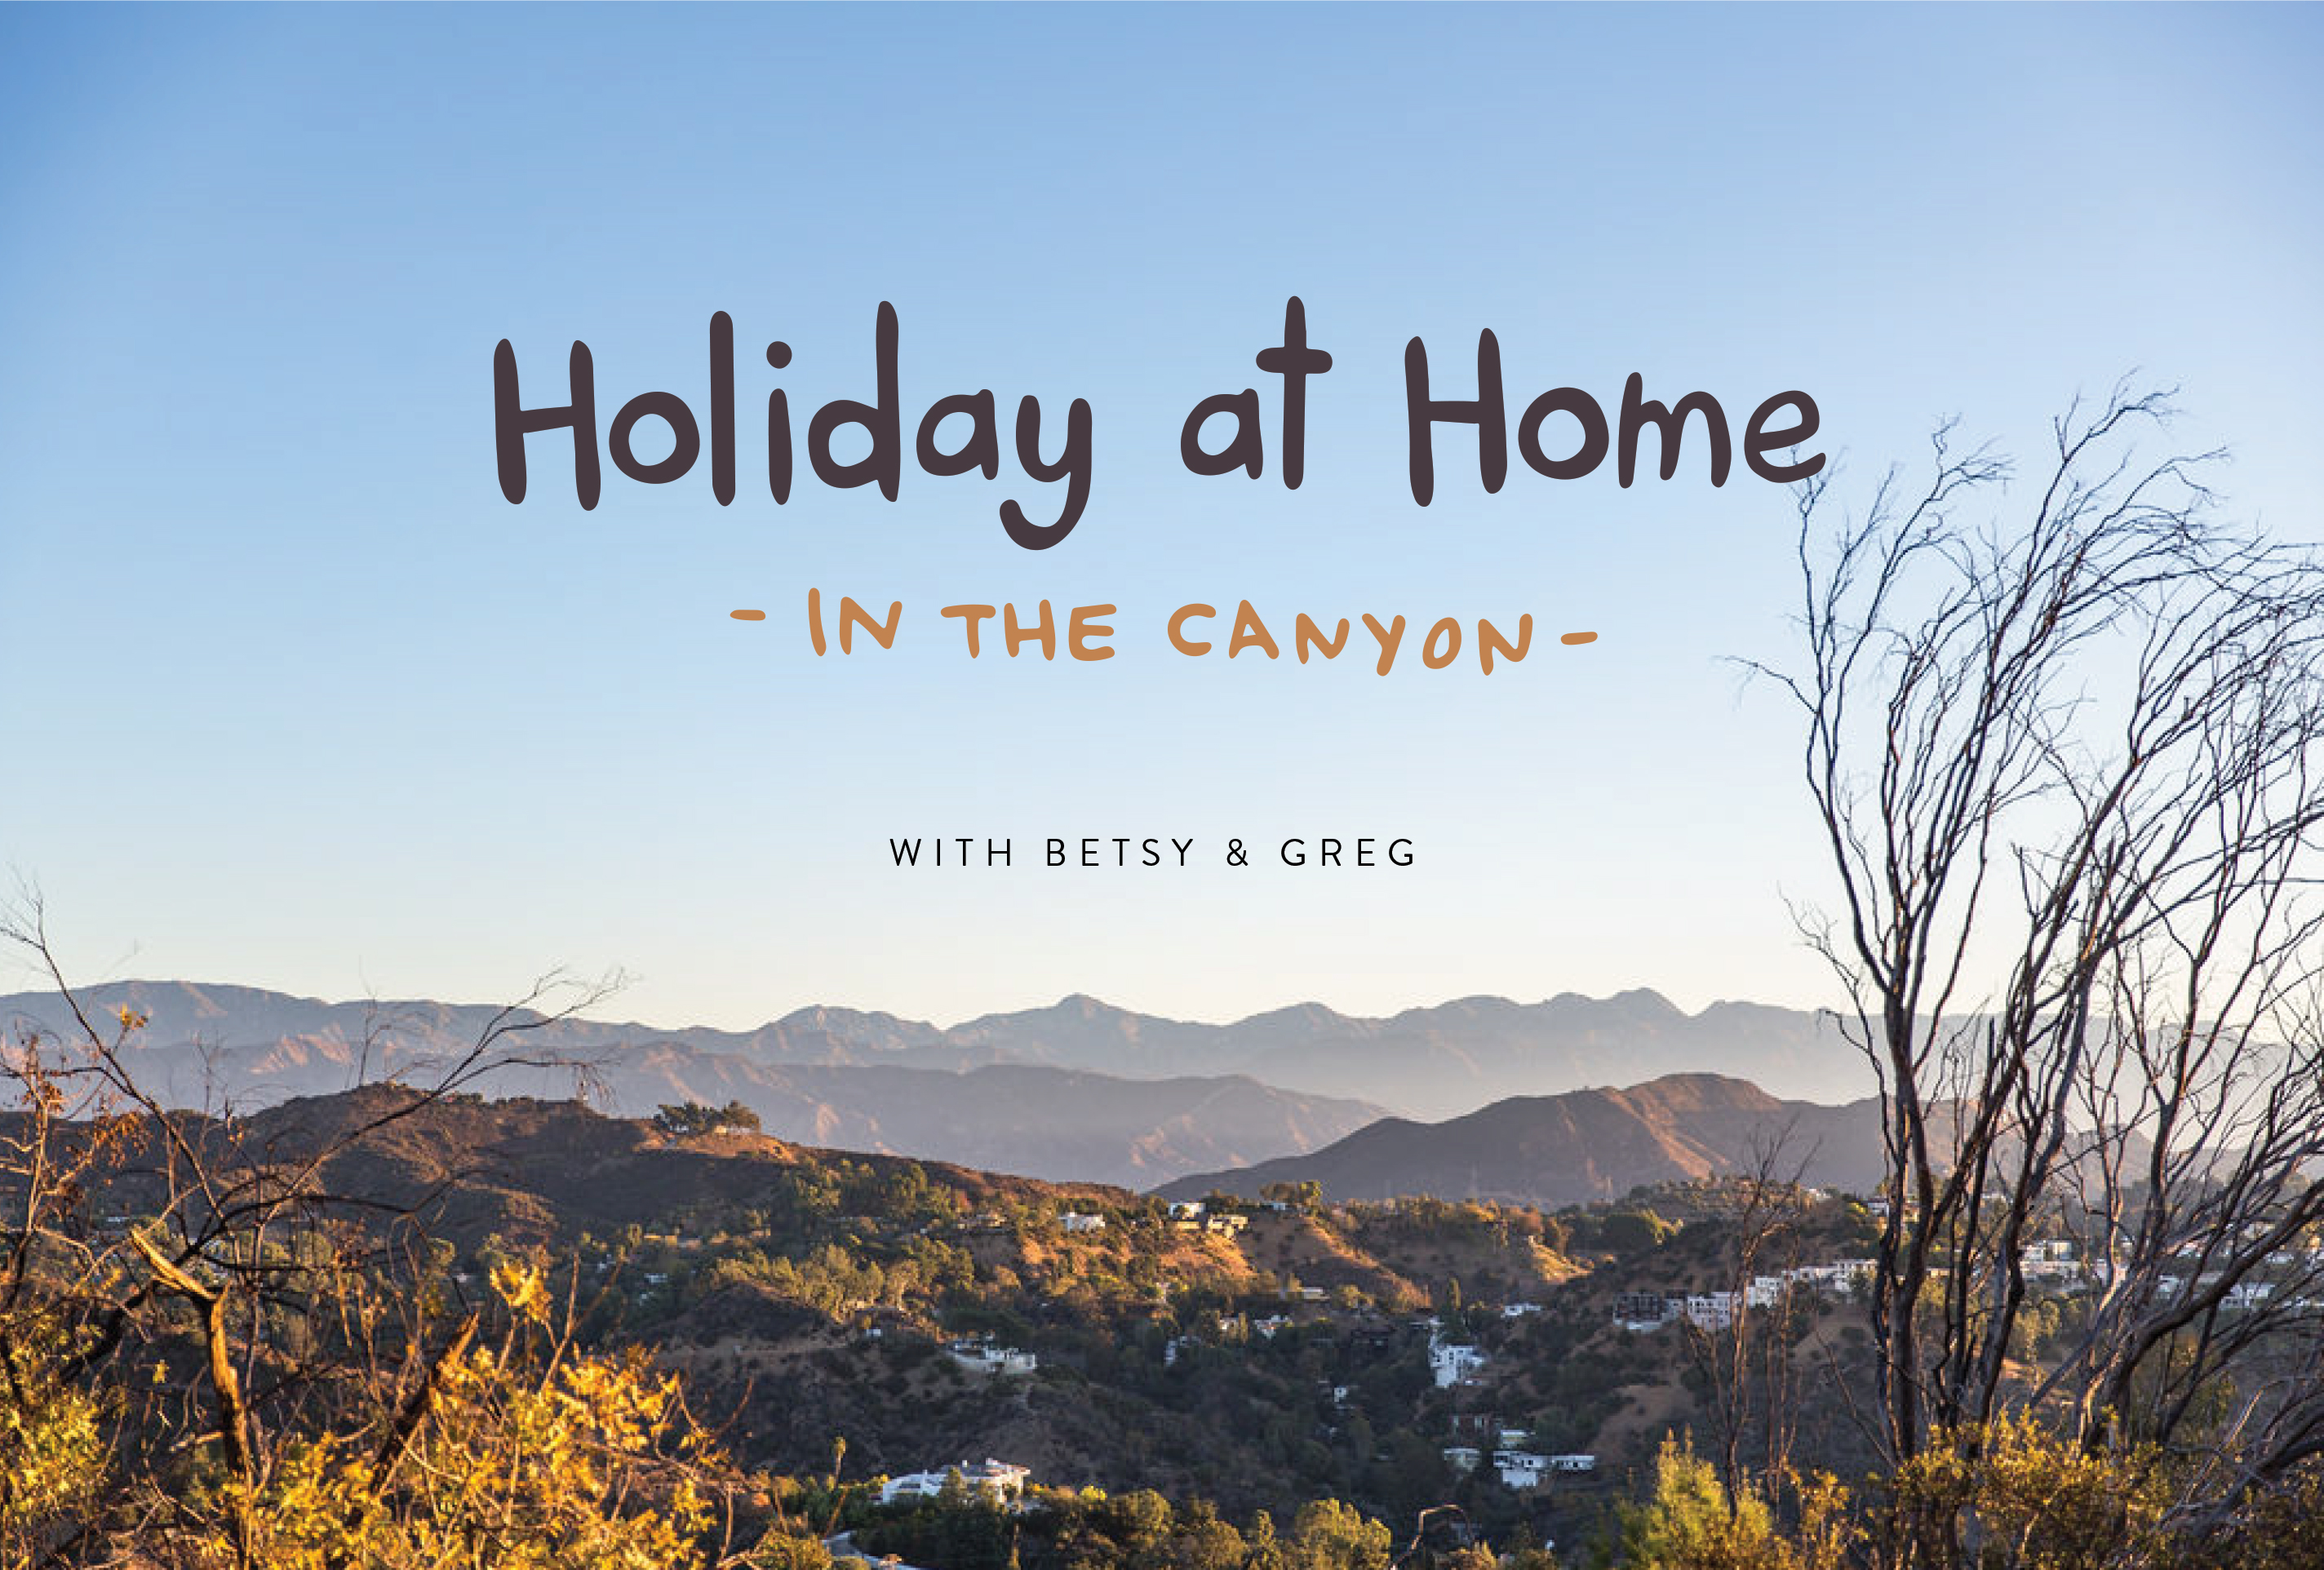 Holiday At Home : In the Canyon with Betsy & Greg